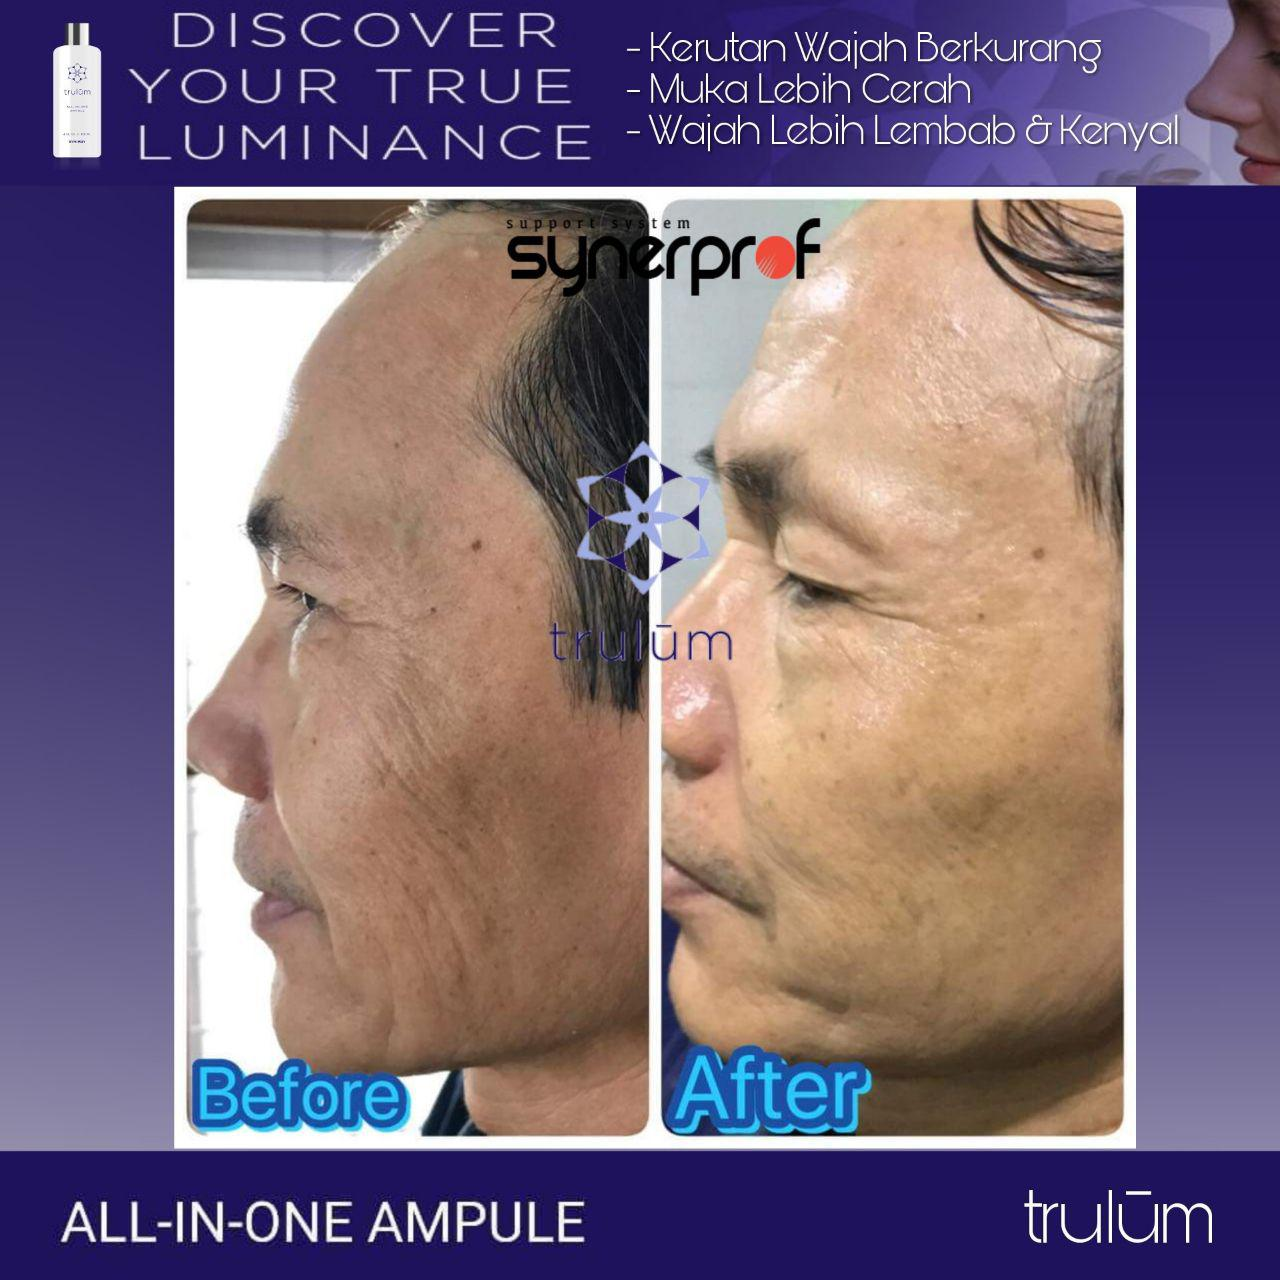 Jual Trulum All In One Ampoule Di Tengaran WA: 08112338376